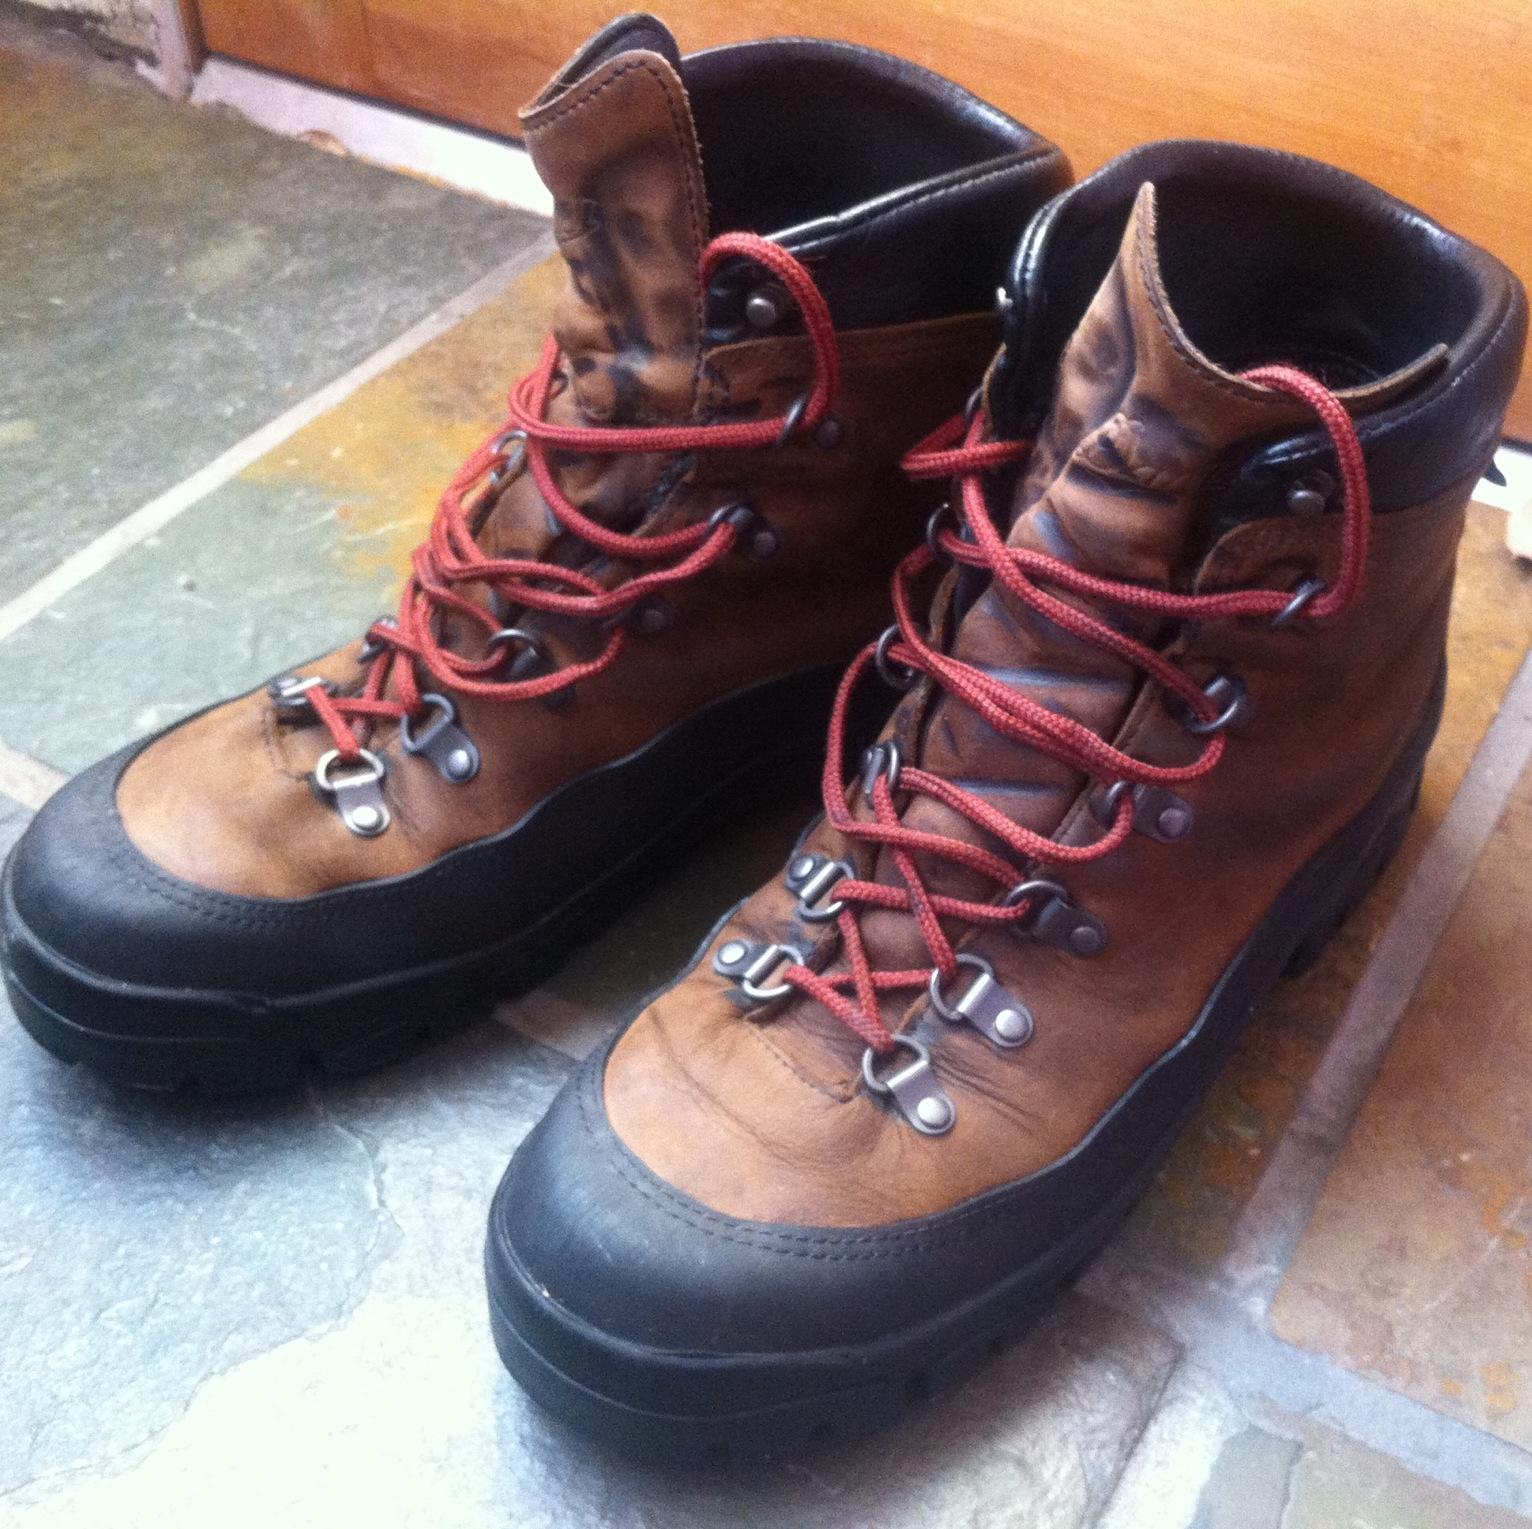 Review: Danner Crater Rim GTX Hiking Boots | deLucasaurus.com